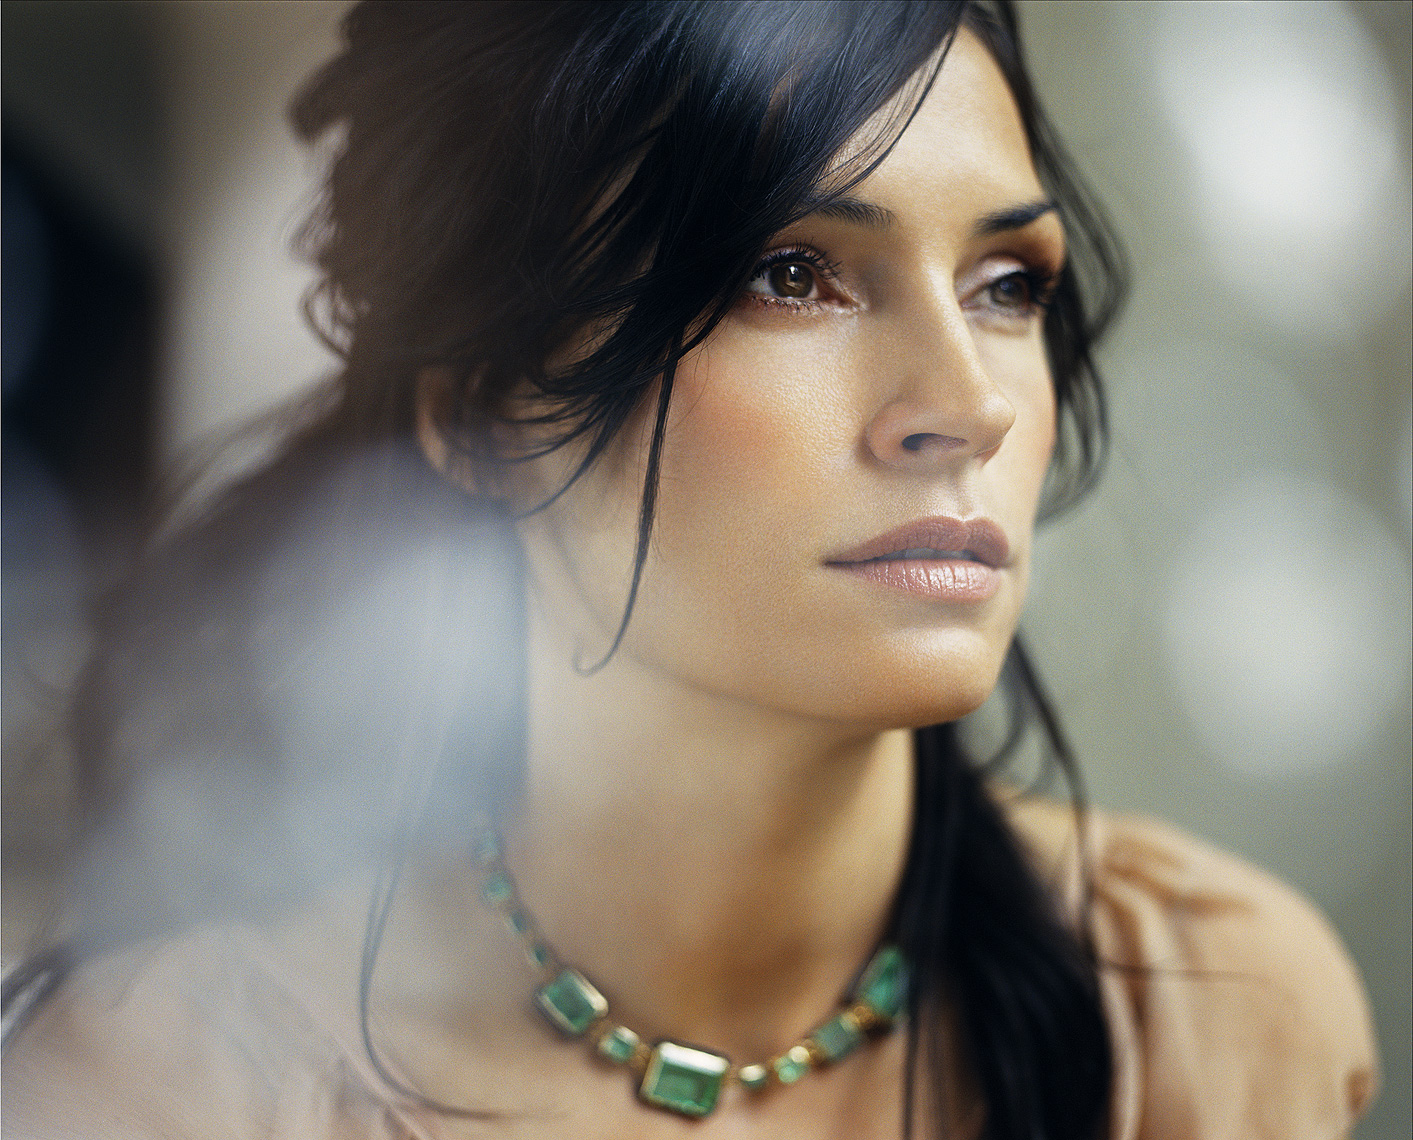 Famke-Beauty-by-Robert-Ascroft.jpg